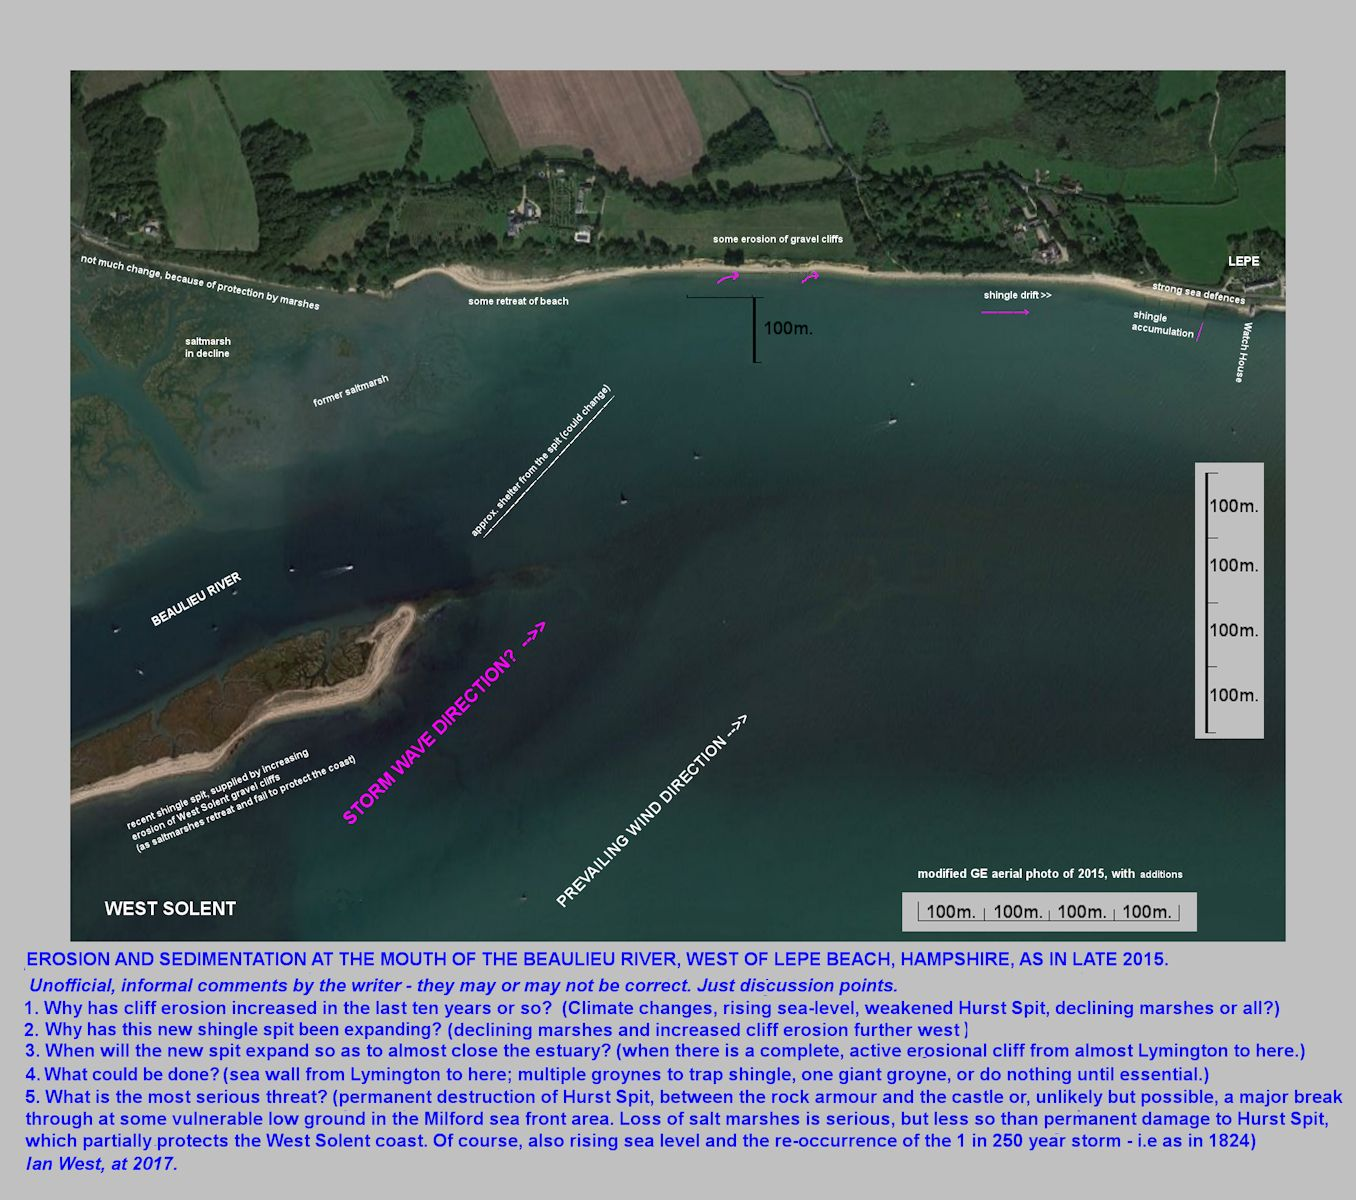 Spit development and coast erosion west of Lepe Beach, Hampshire, at the mouth of the Beaulieu River or estuary, as seen from above in labelled view